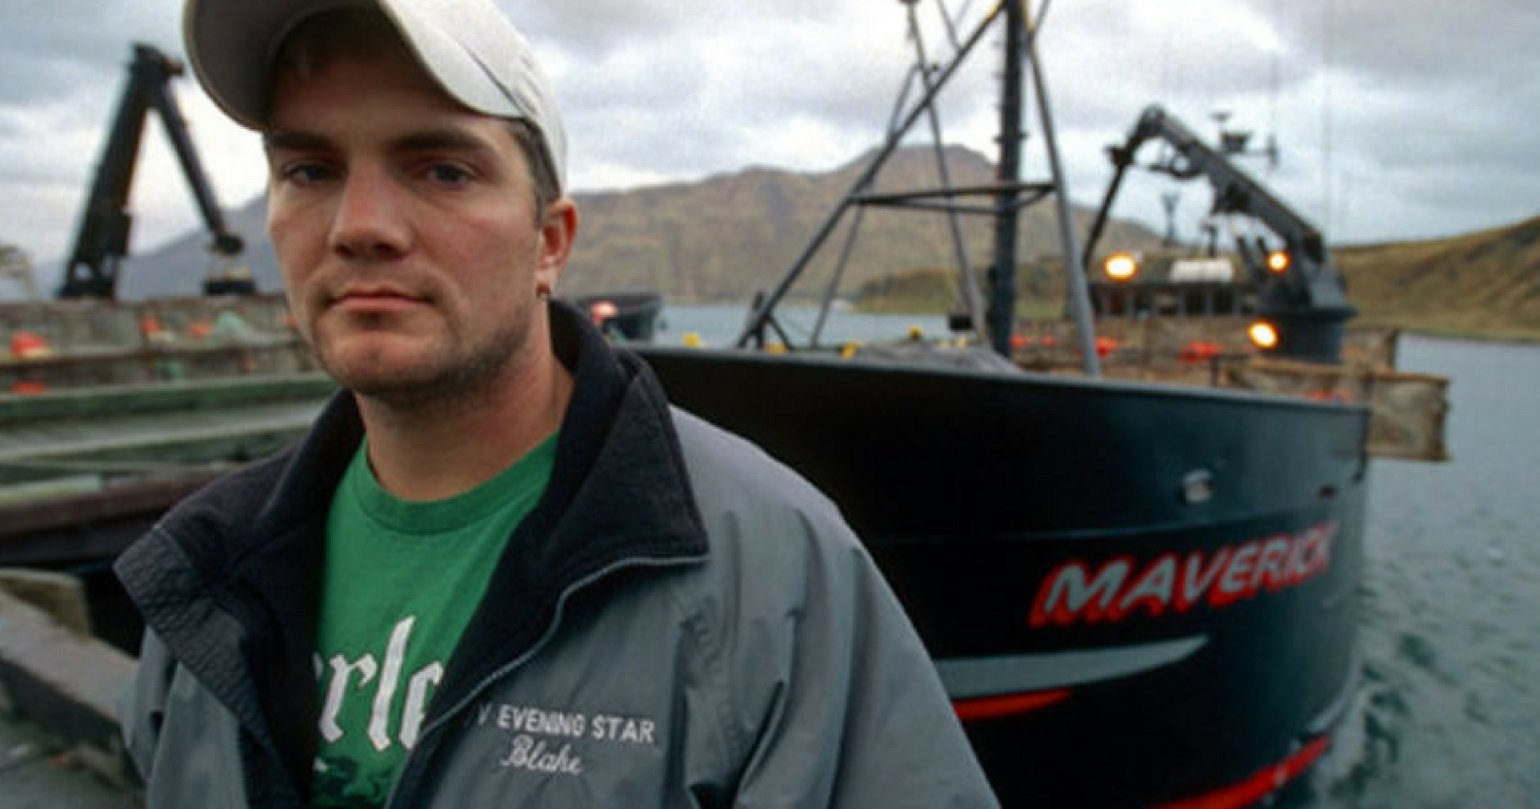 Early 'Deadliest Catch' Captain Was 38